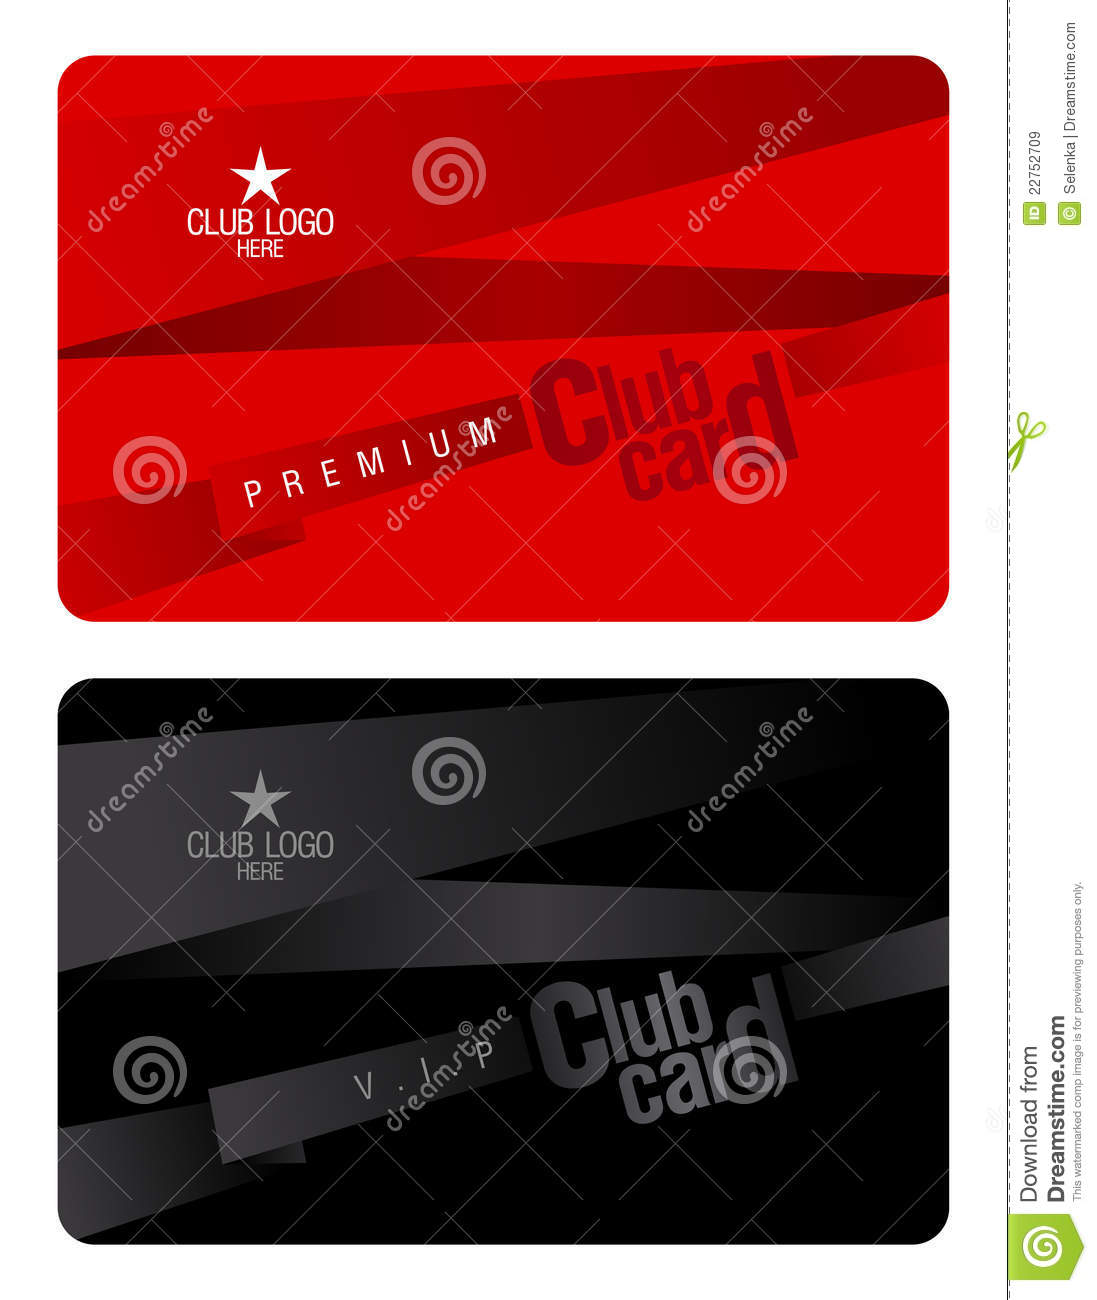 Club Card Design Template Royalty Free Images Image 22752709 – Club Card Design